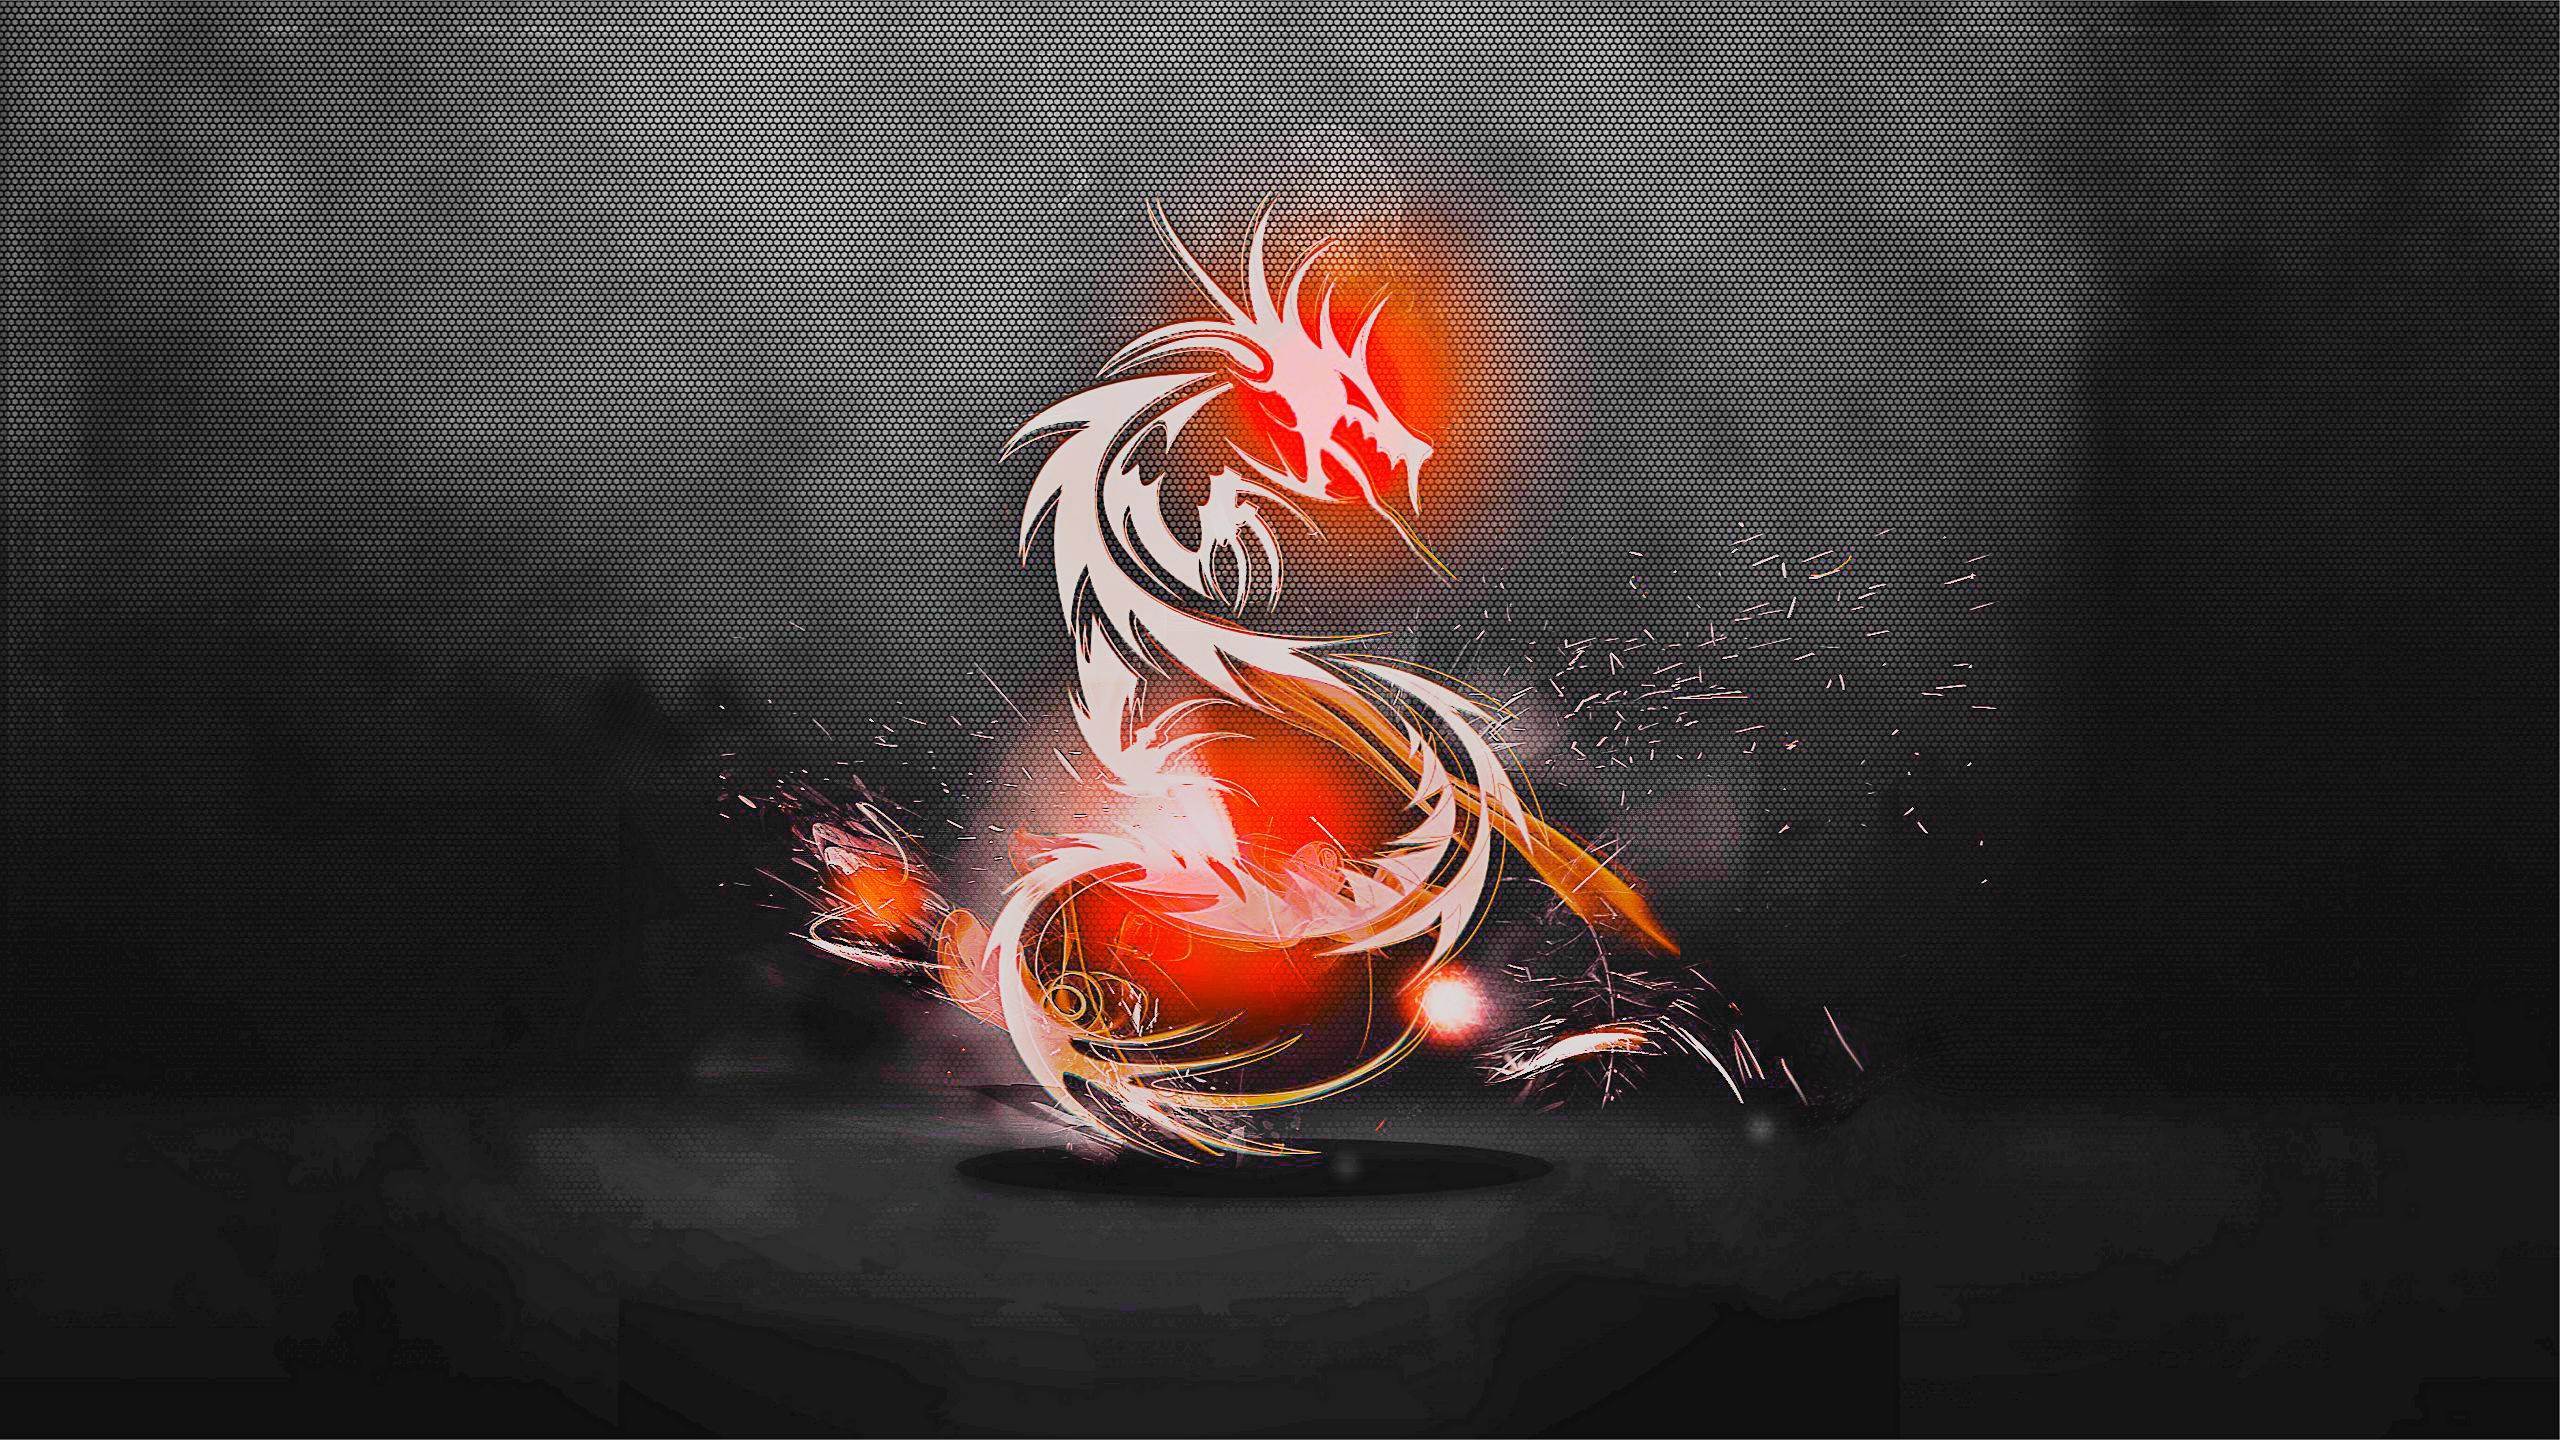 Red Dragon Wallpapers Top Free Red Dragon Backgrounds